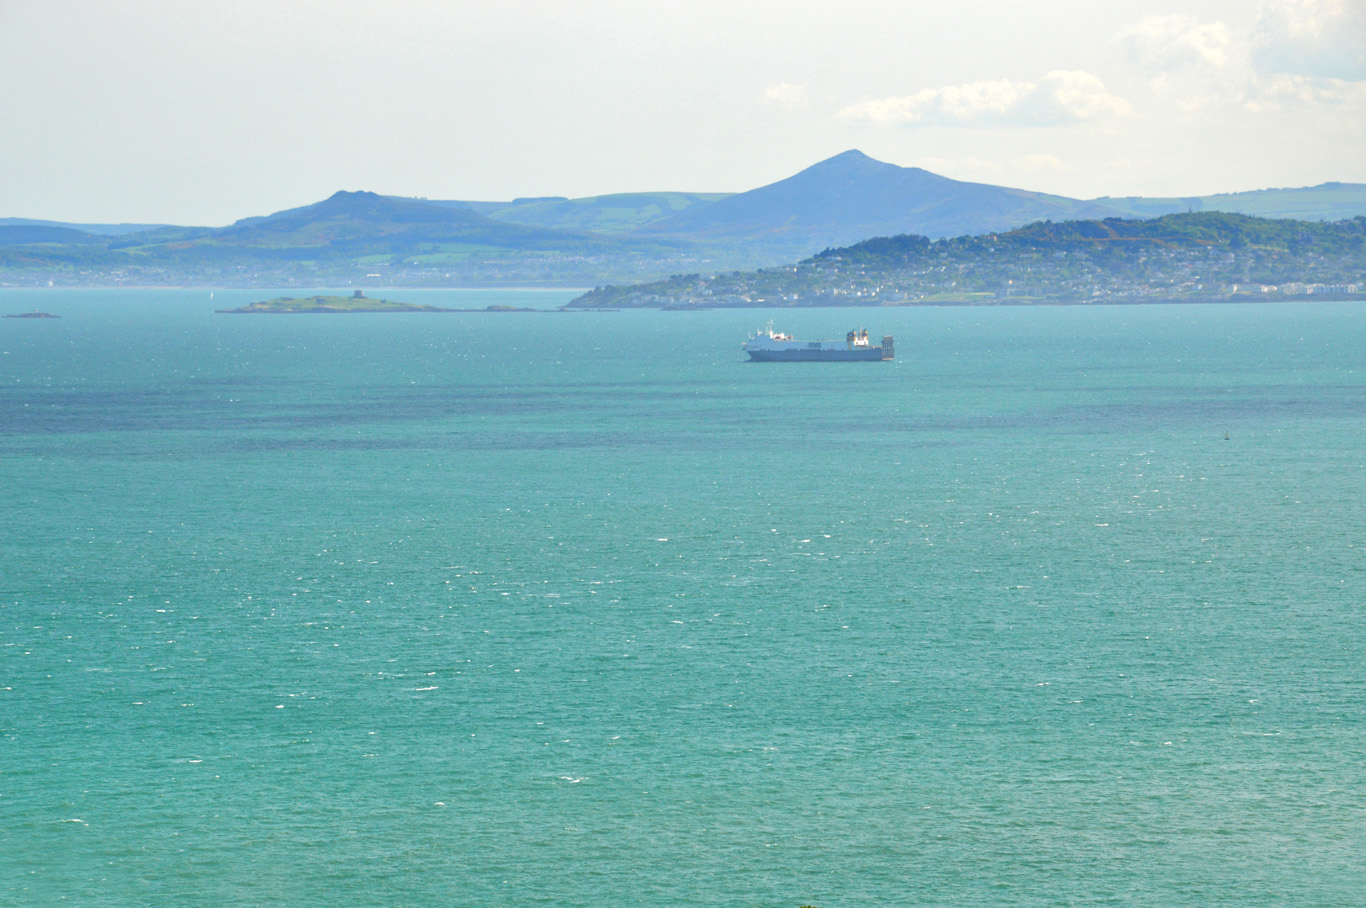 The southern side of Dublin Bay viewed from Howth